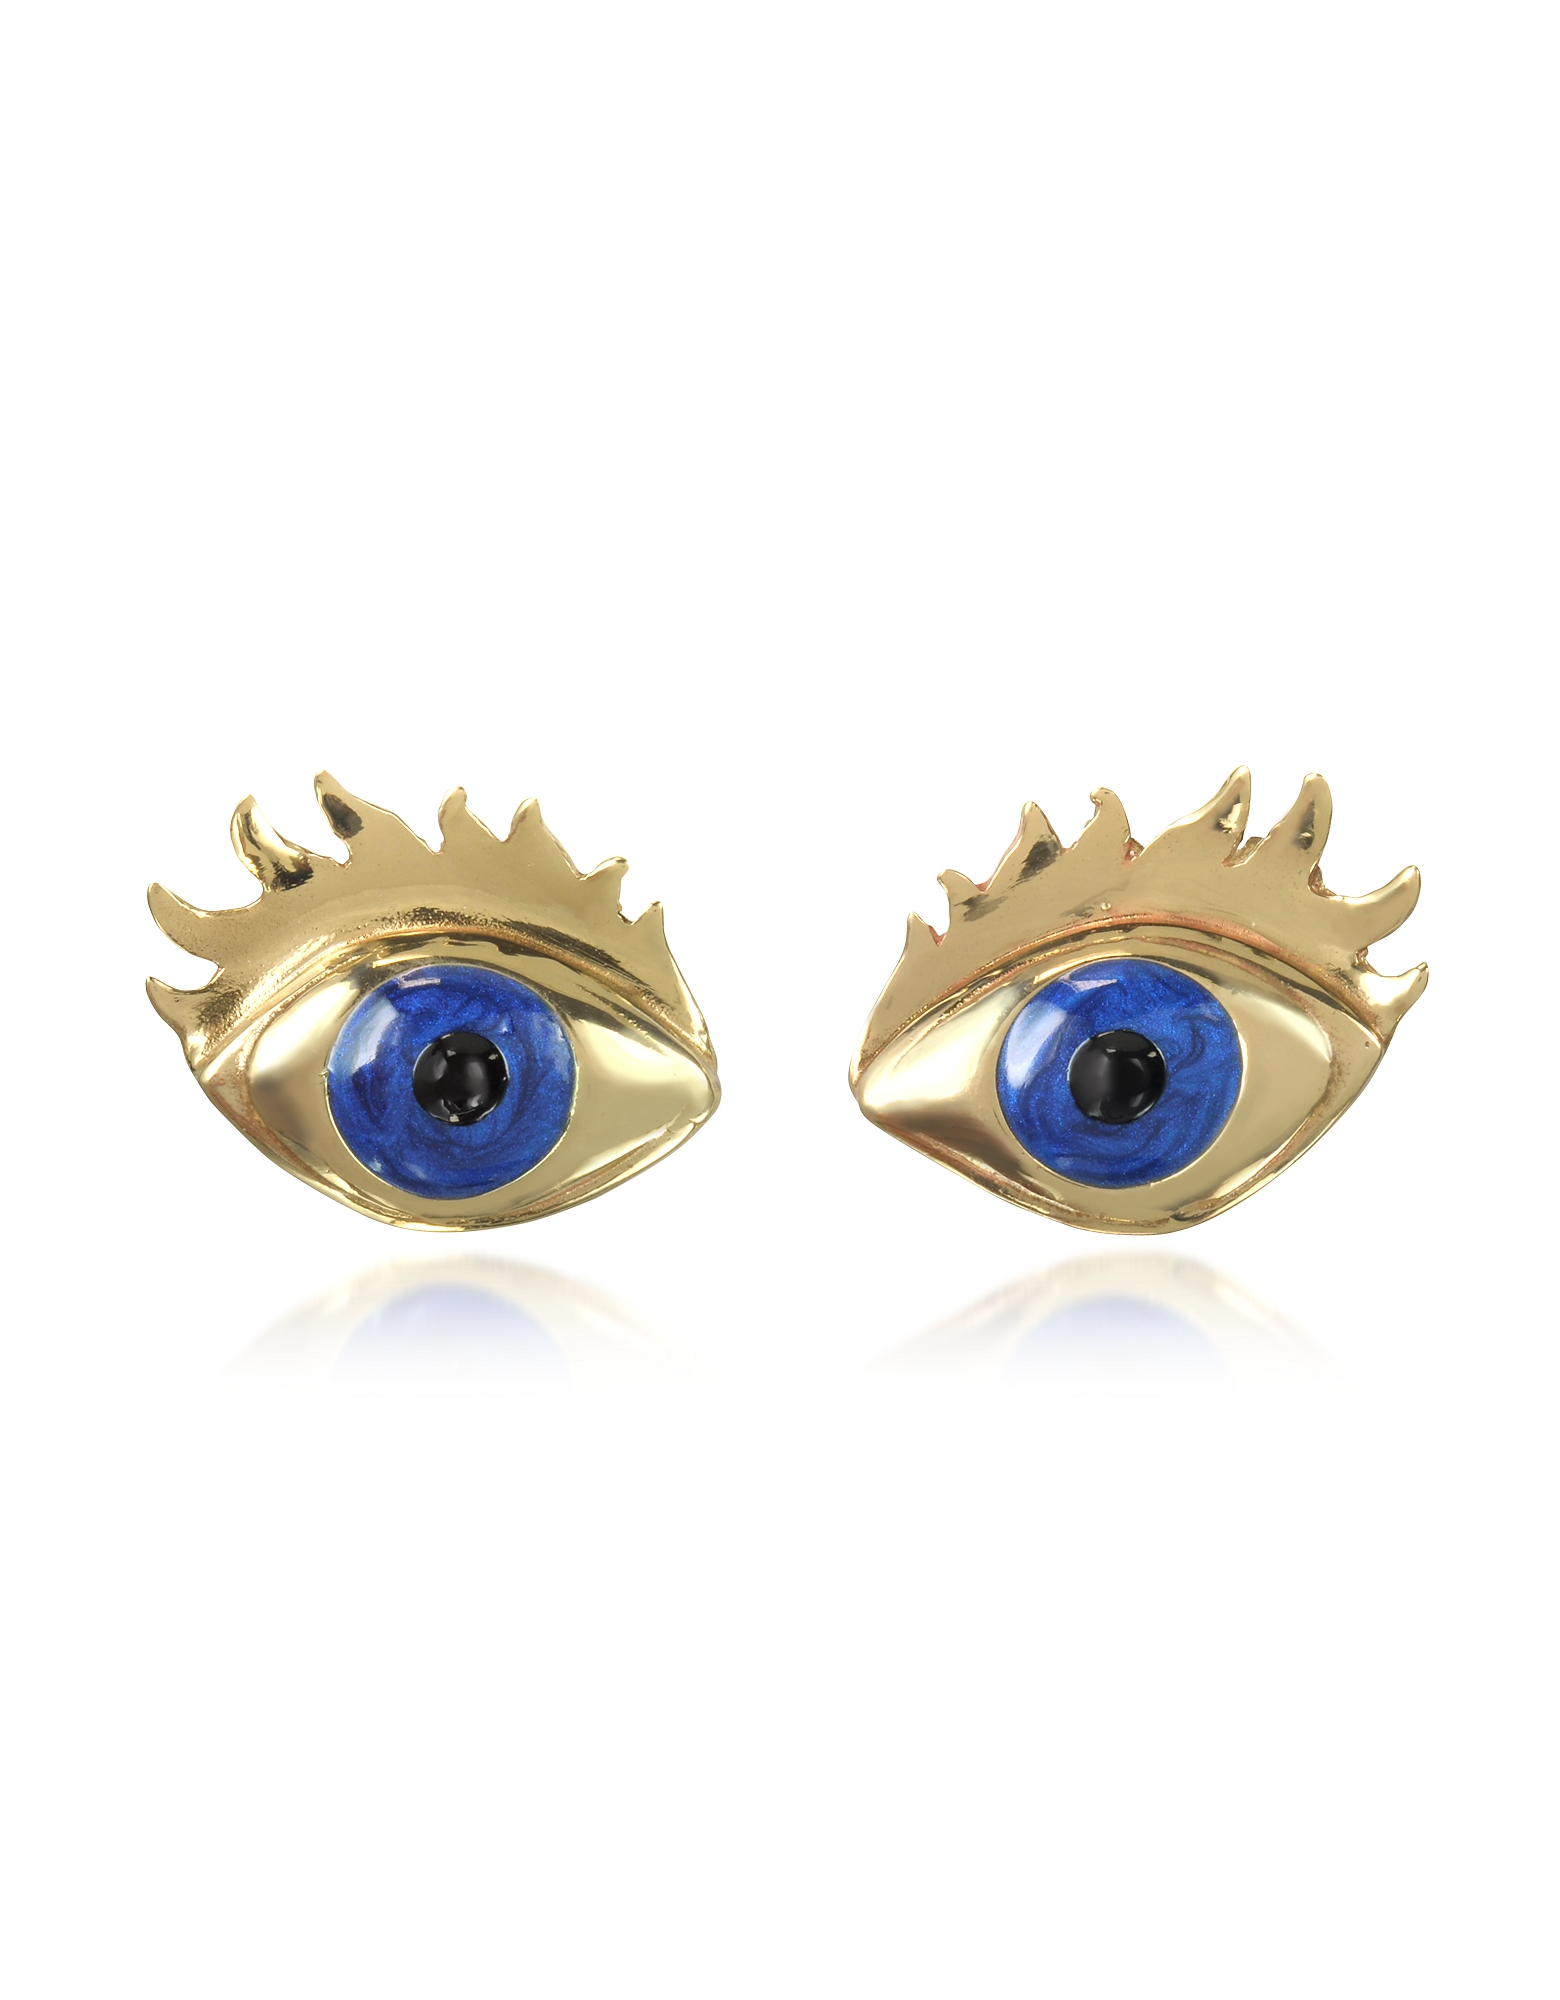 Bernard Delettrez Designer Earrings, Blue Enamel Eye Bronze Earrings